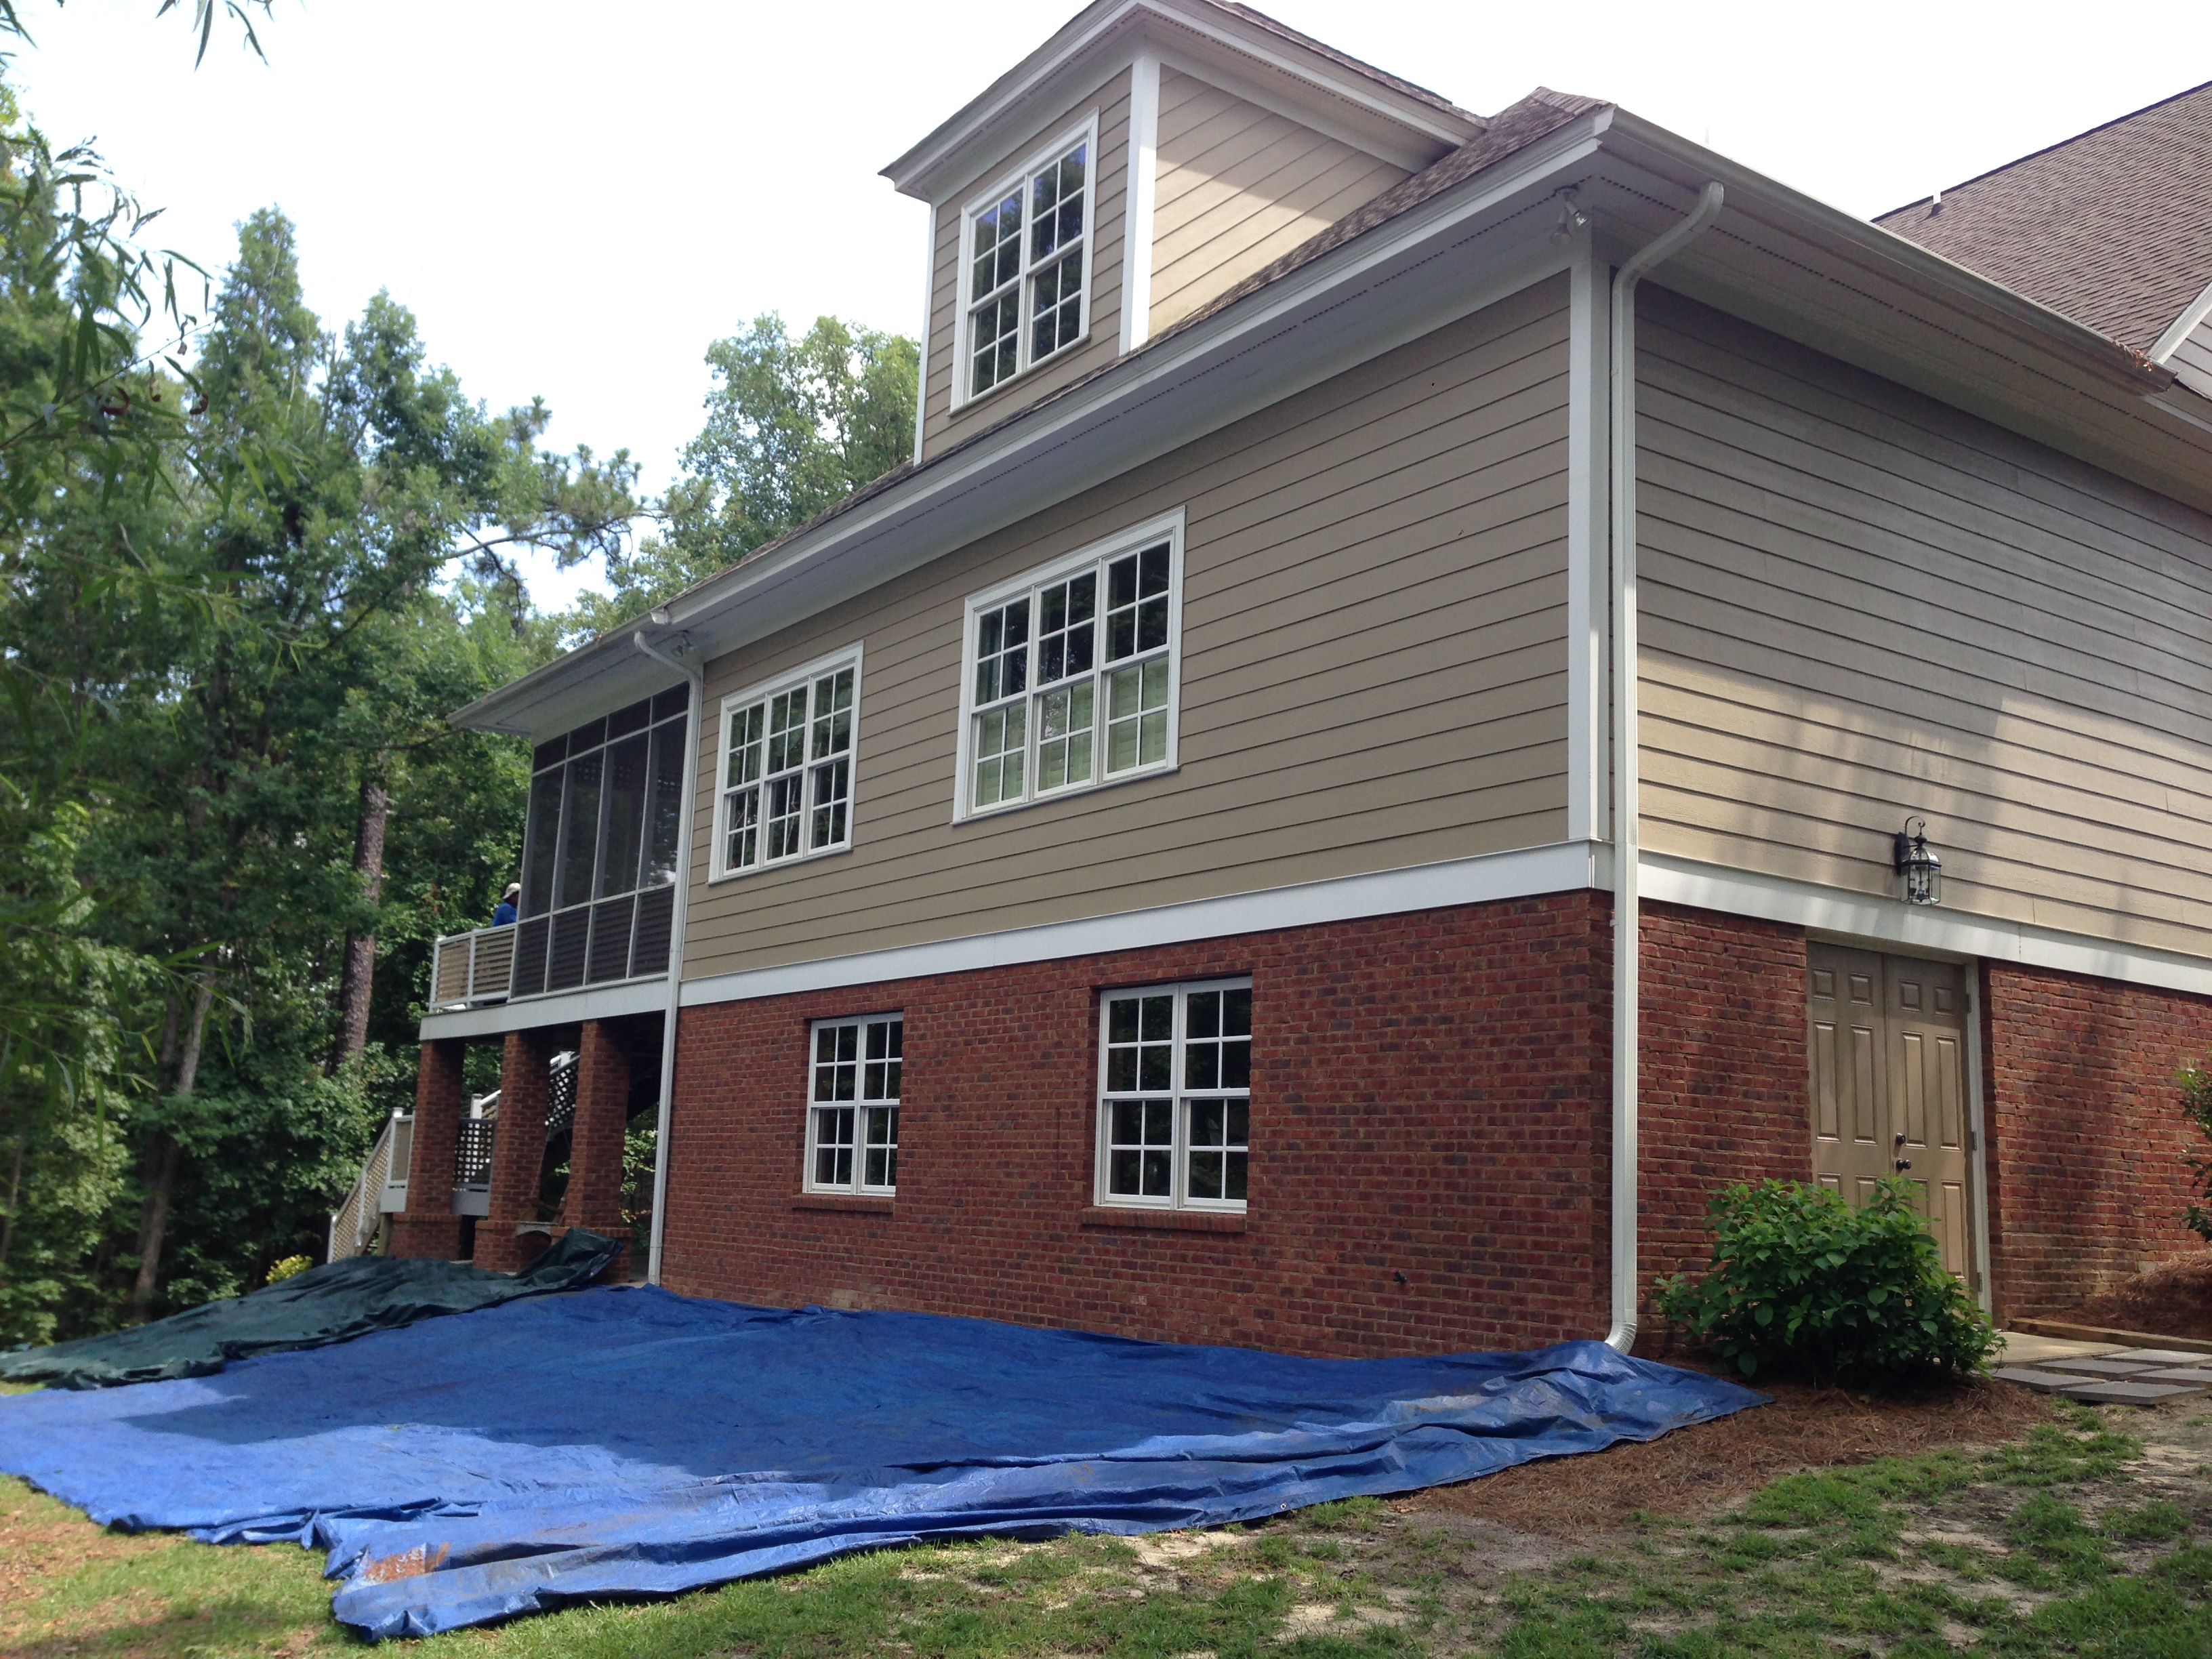 Home Siding | Vinyl Siding for Homes | American Roofing & Vinyl Siding